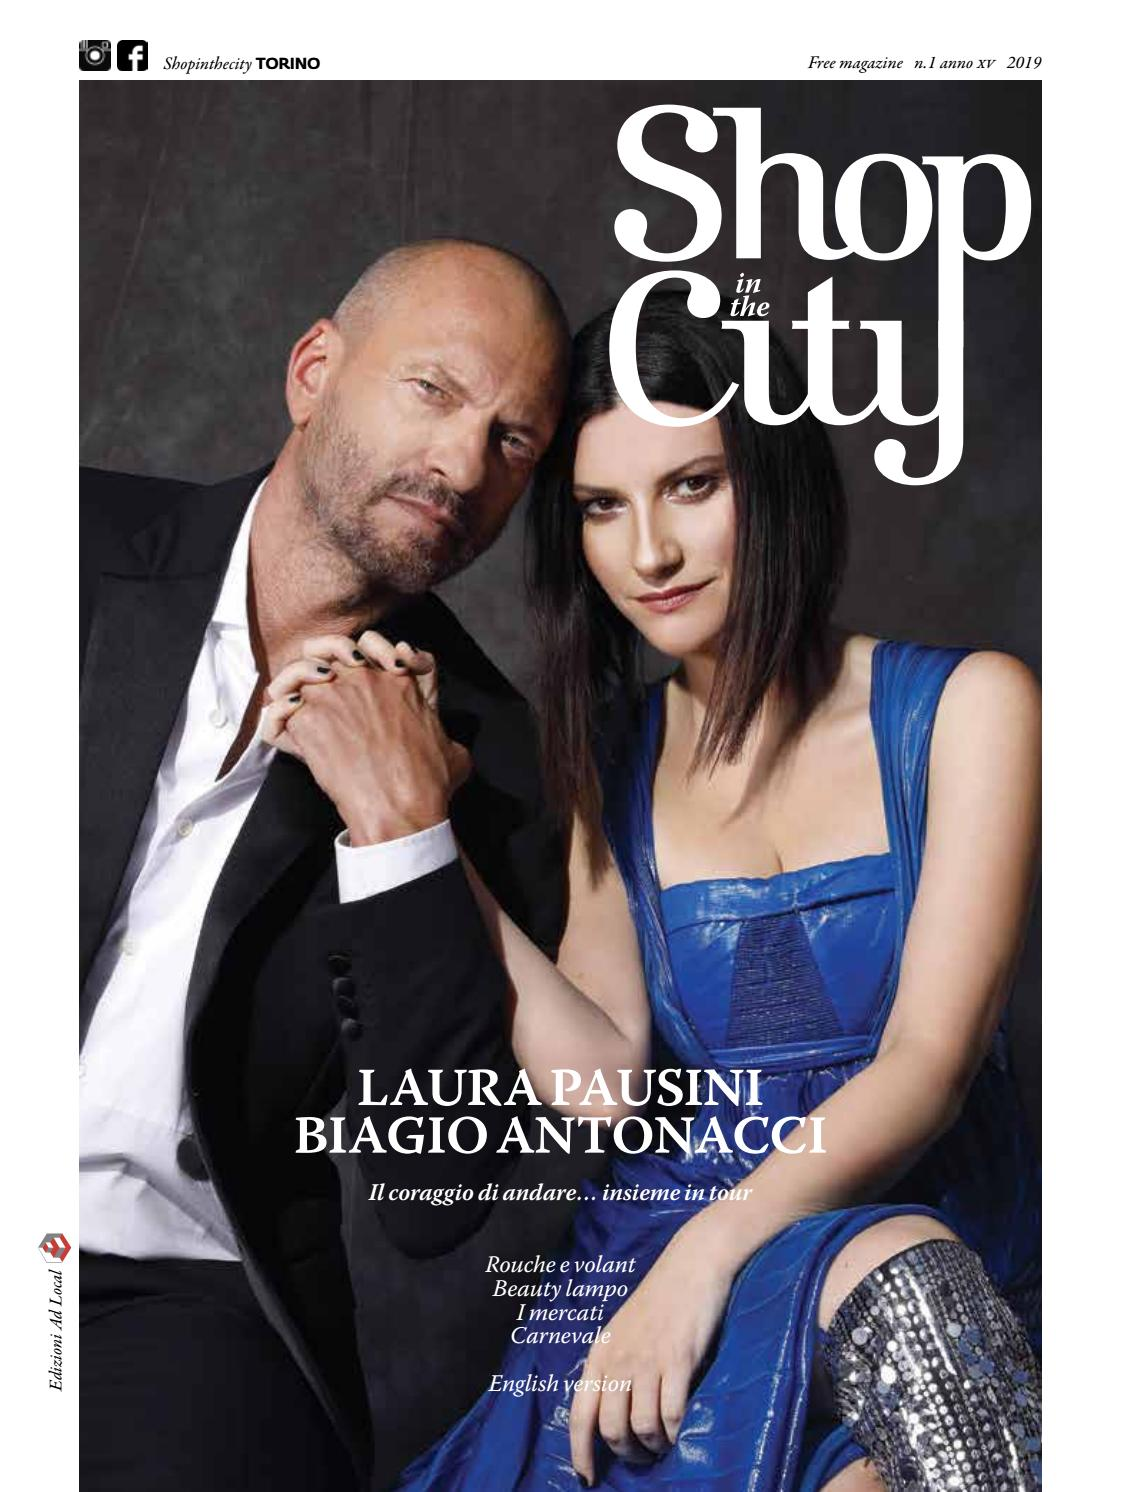 ShopintheCity febbario 2019 by ShopintheCity - issuu 4d8a3968d20